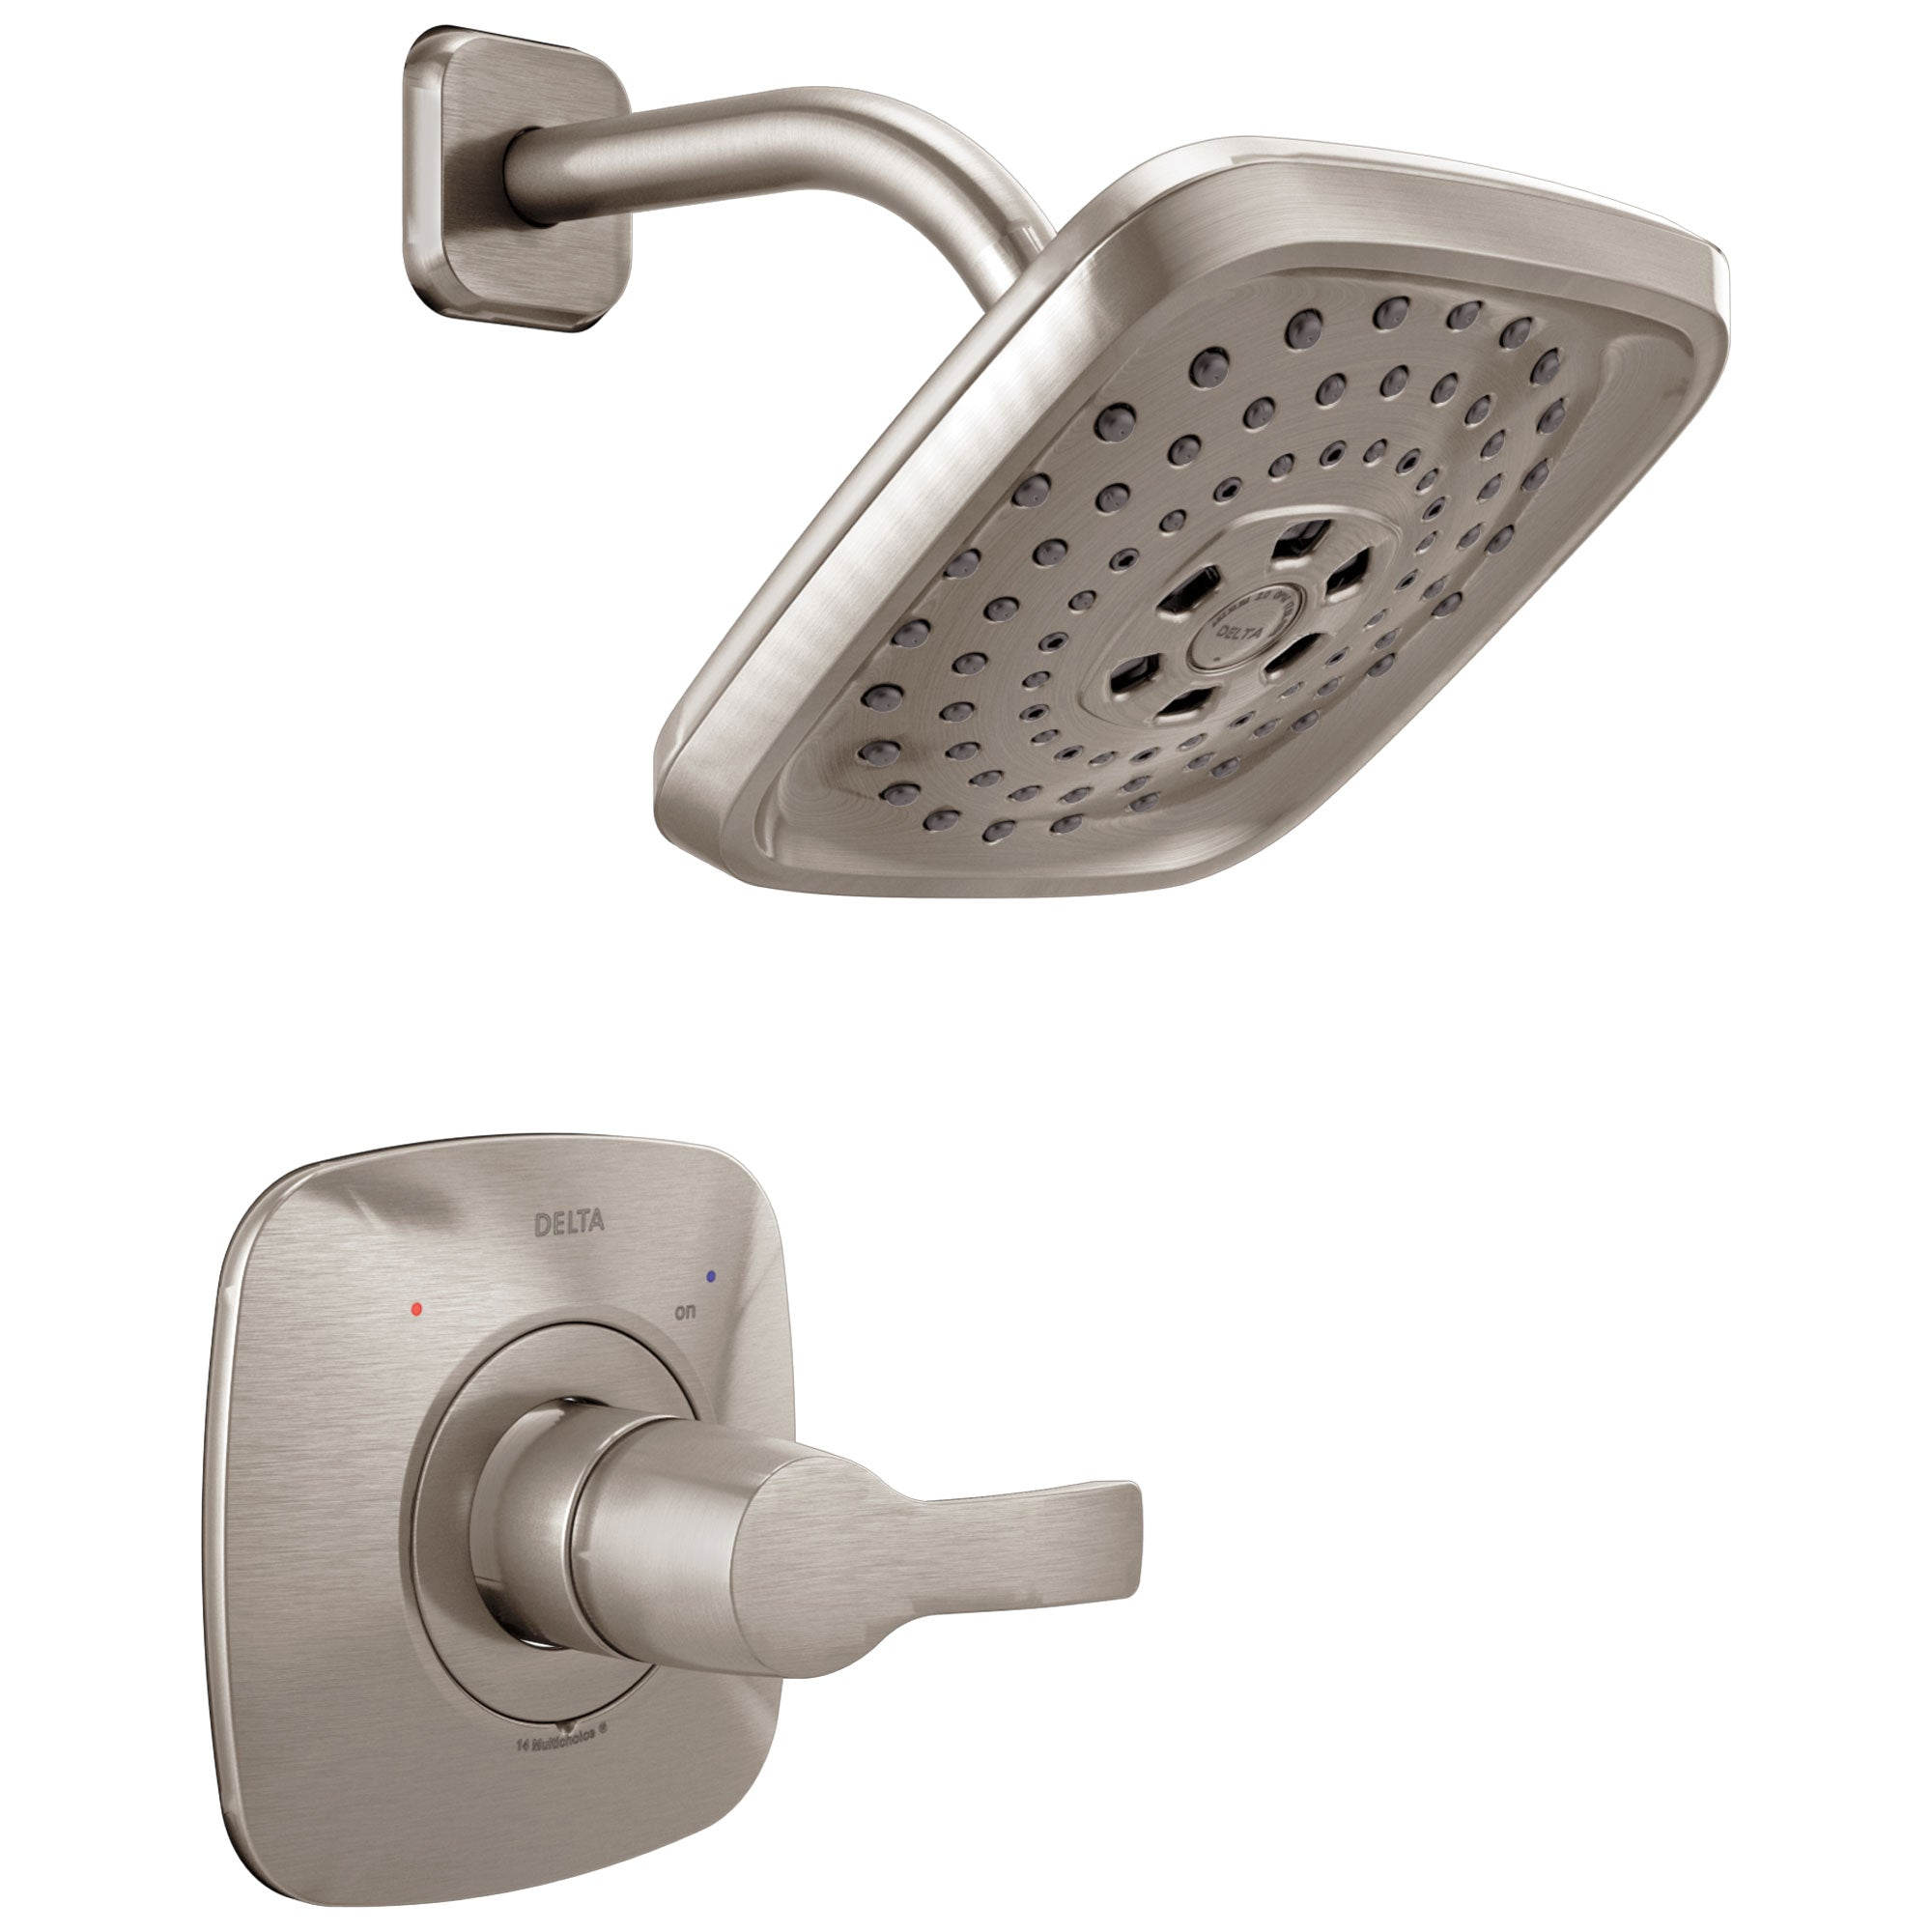 Delta Tesla H2Okinetic 1-Handle Shower Faucet in Stainless Steel Finish Includes Rough-in Valve with Stops D2585V